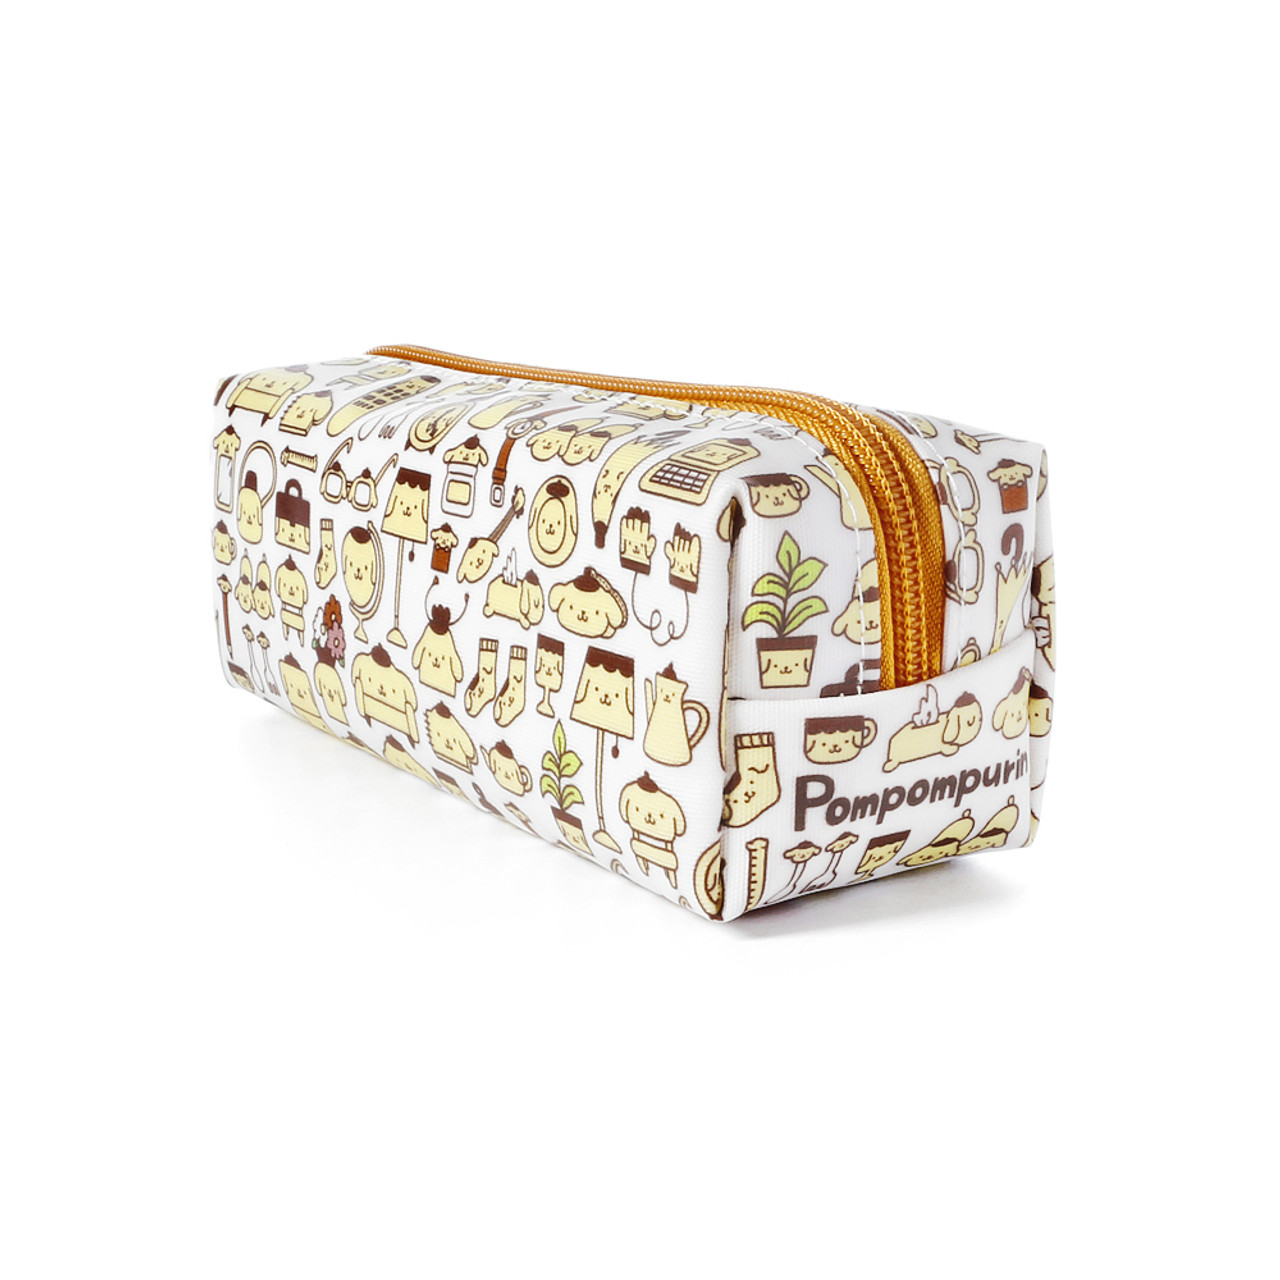 Pompompurin Occupy Home Lifestyle Pencil Case ( Side View )